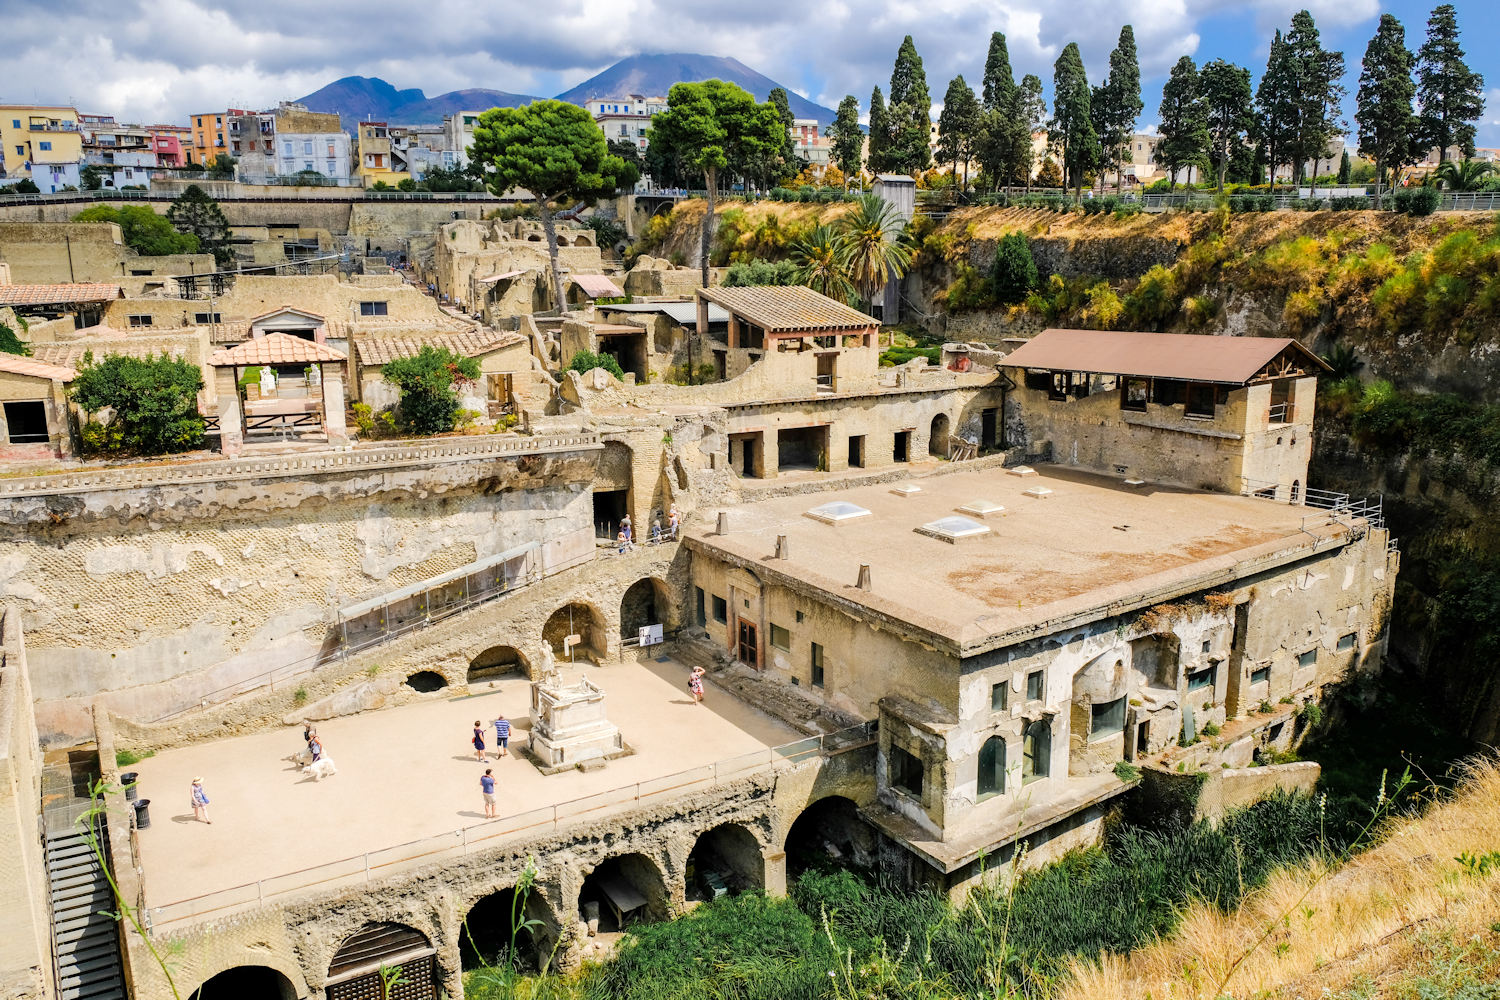 The archaeological excavations of Herculaneum